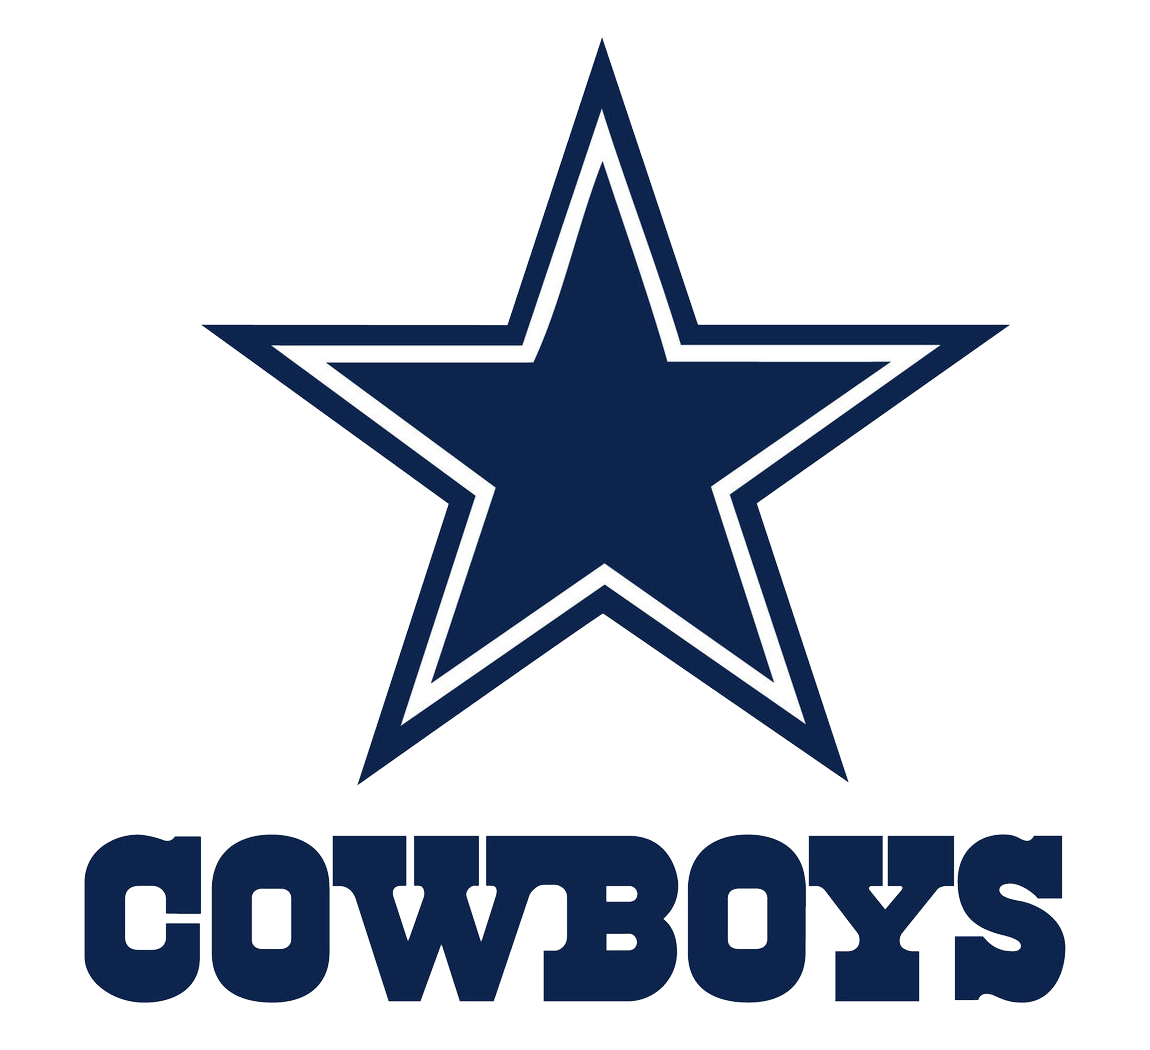 Meaning Dallas Cowboys logo and symbol history and